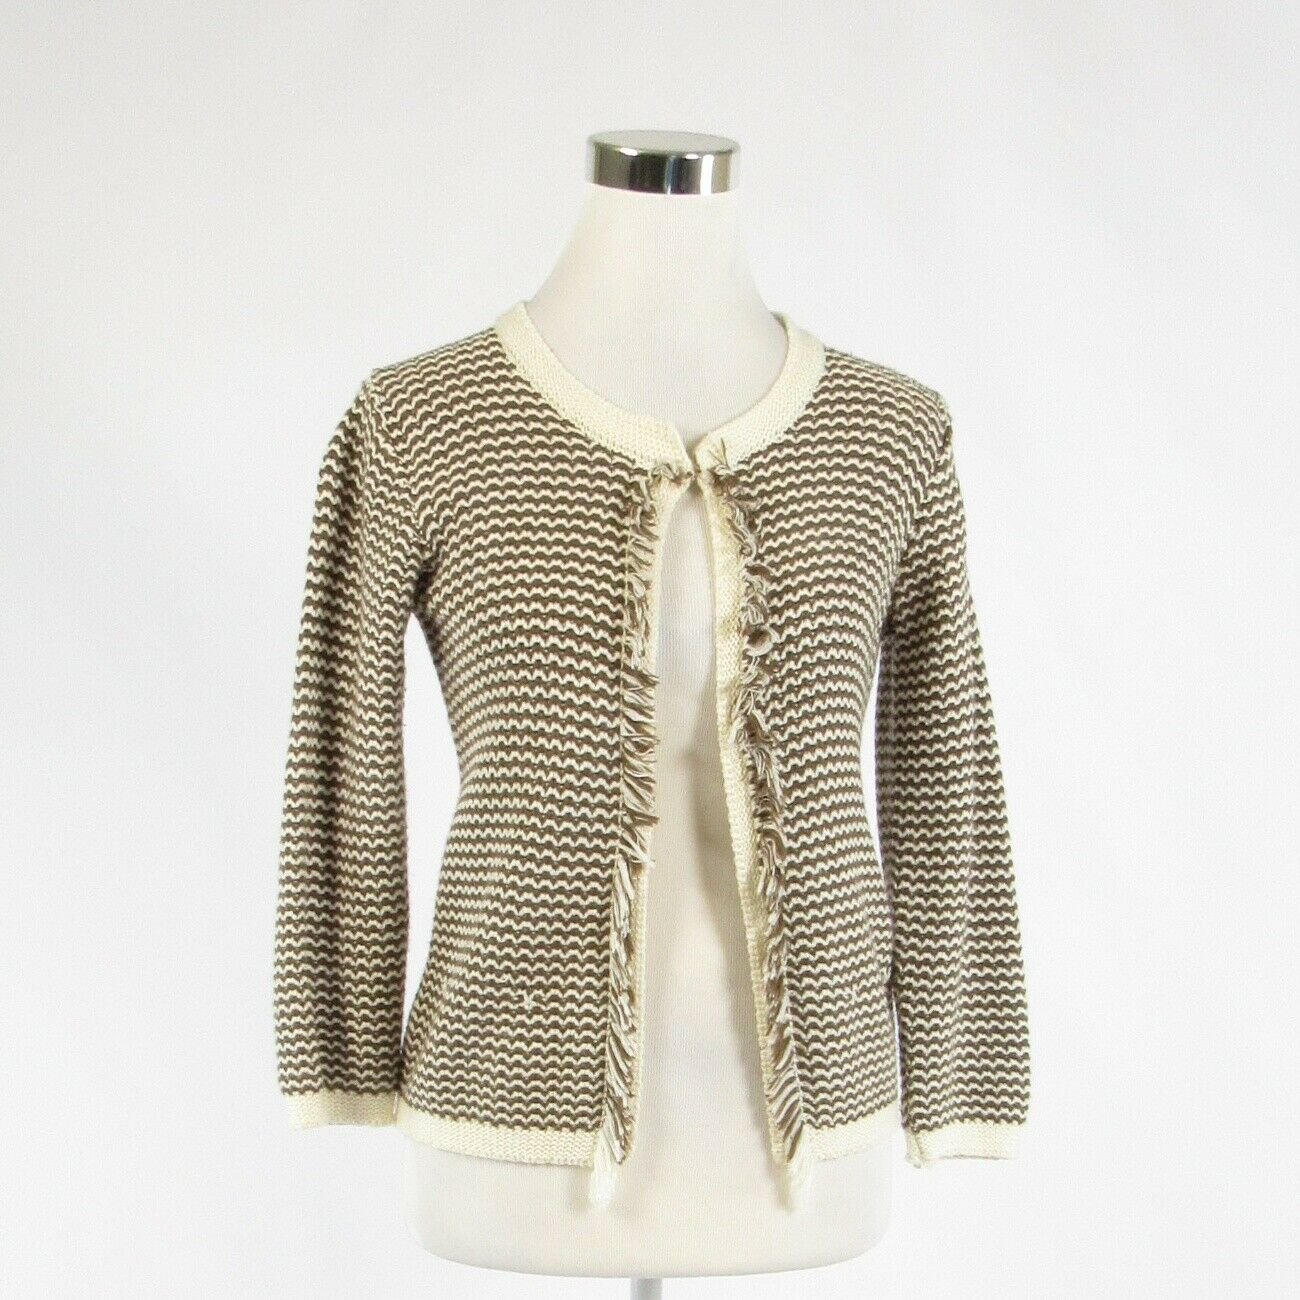 Brown ivory chevron cotton blend IPERICO 3/4 sleeve cardigan sweater M-Newish